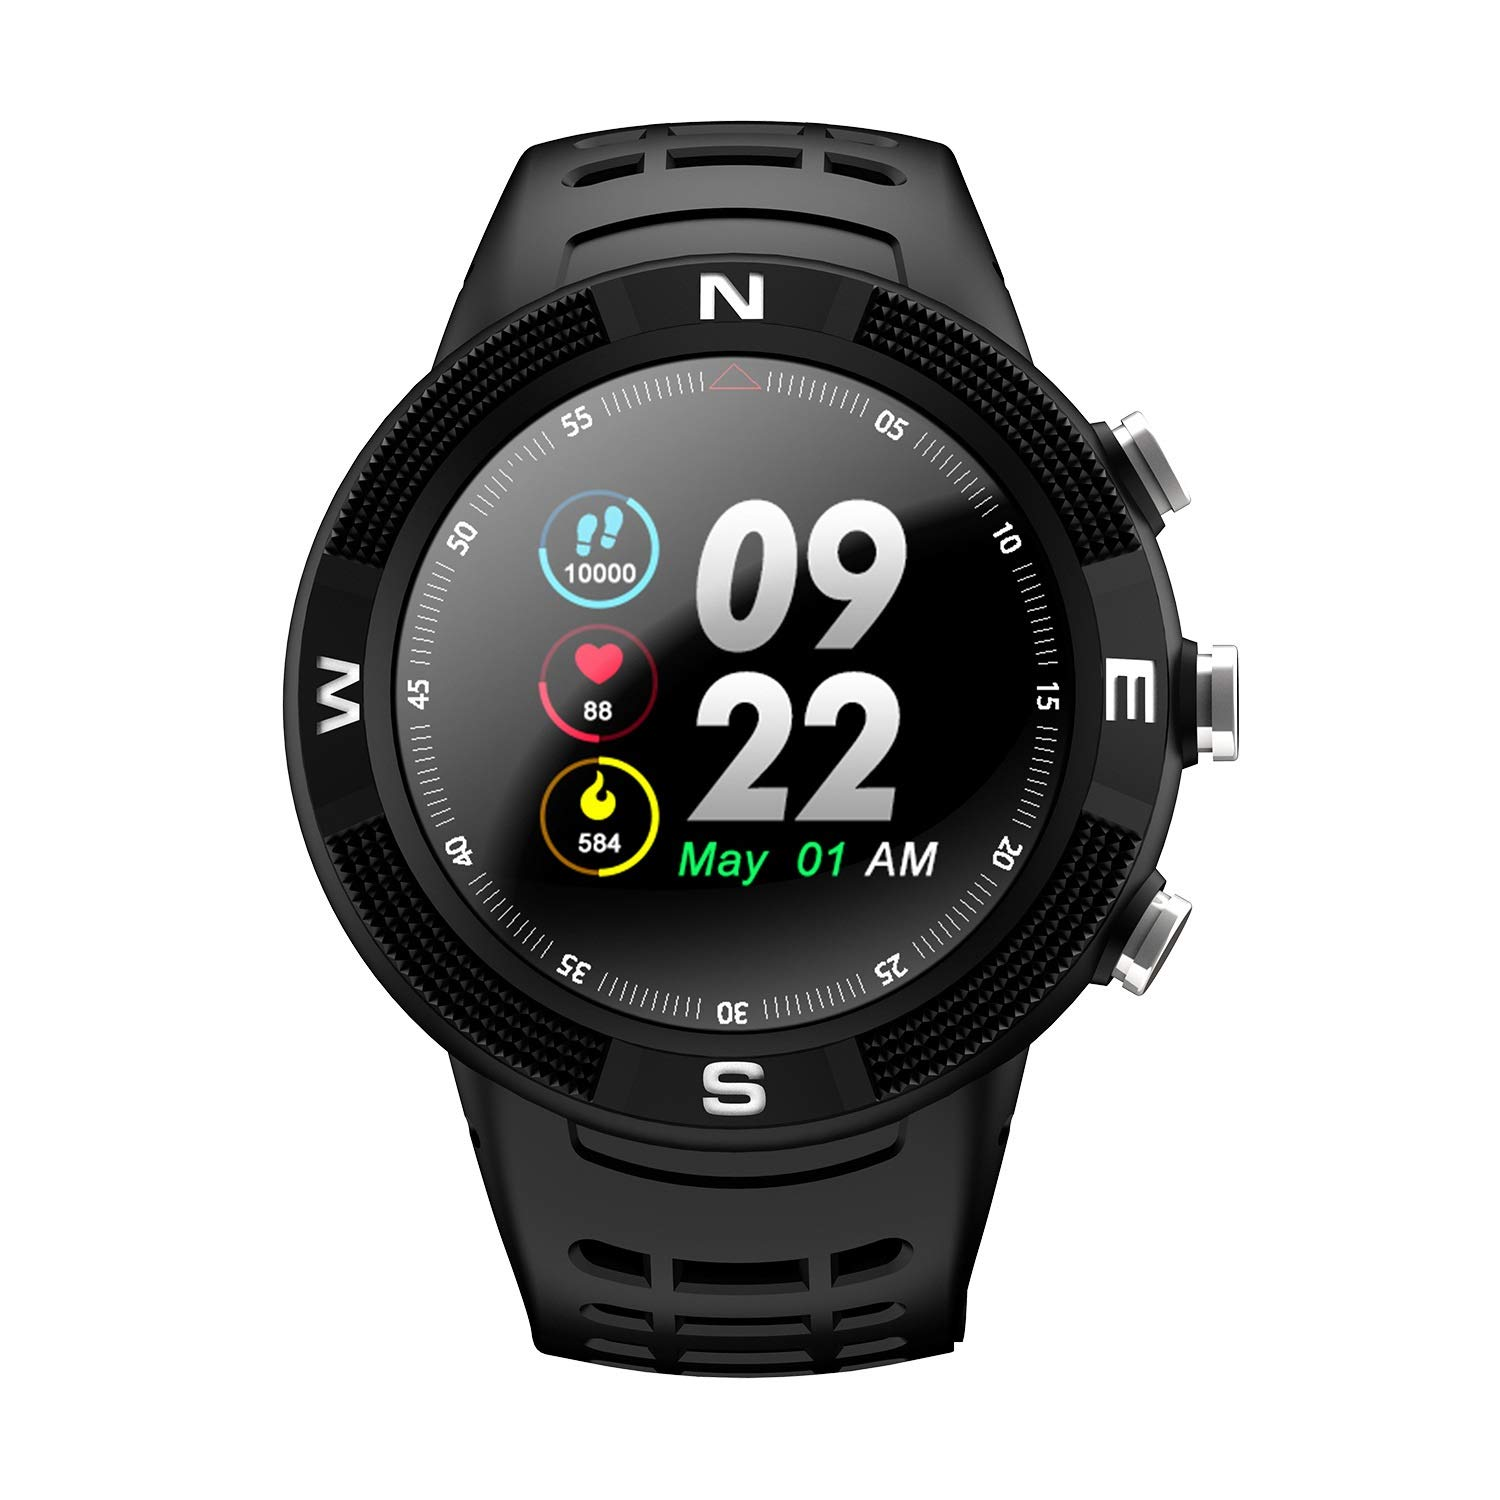 Smart Watch - Waterproof Bluetooth Stylish Touch Screen Smart Watch, GPS Positioning, Outdoor Sports Smart Watch, Compatible with Android and iOS Platforms (Color : Black)